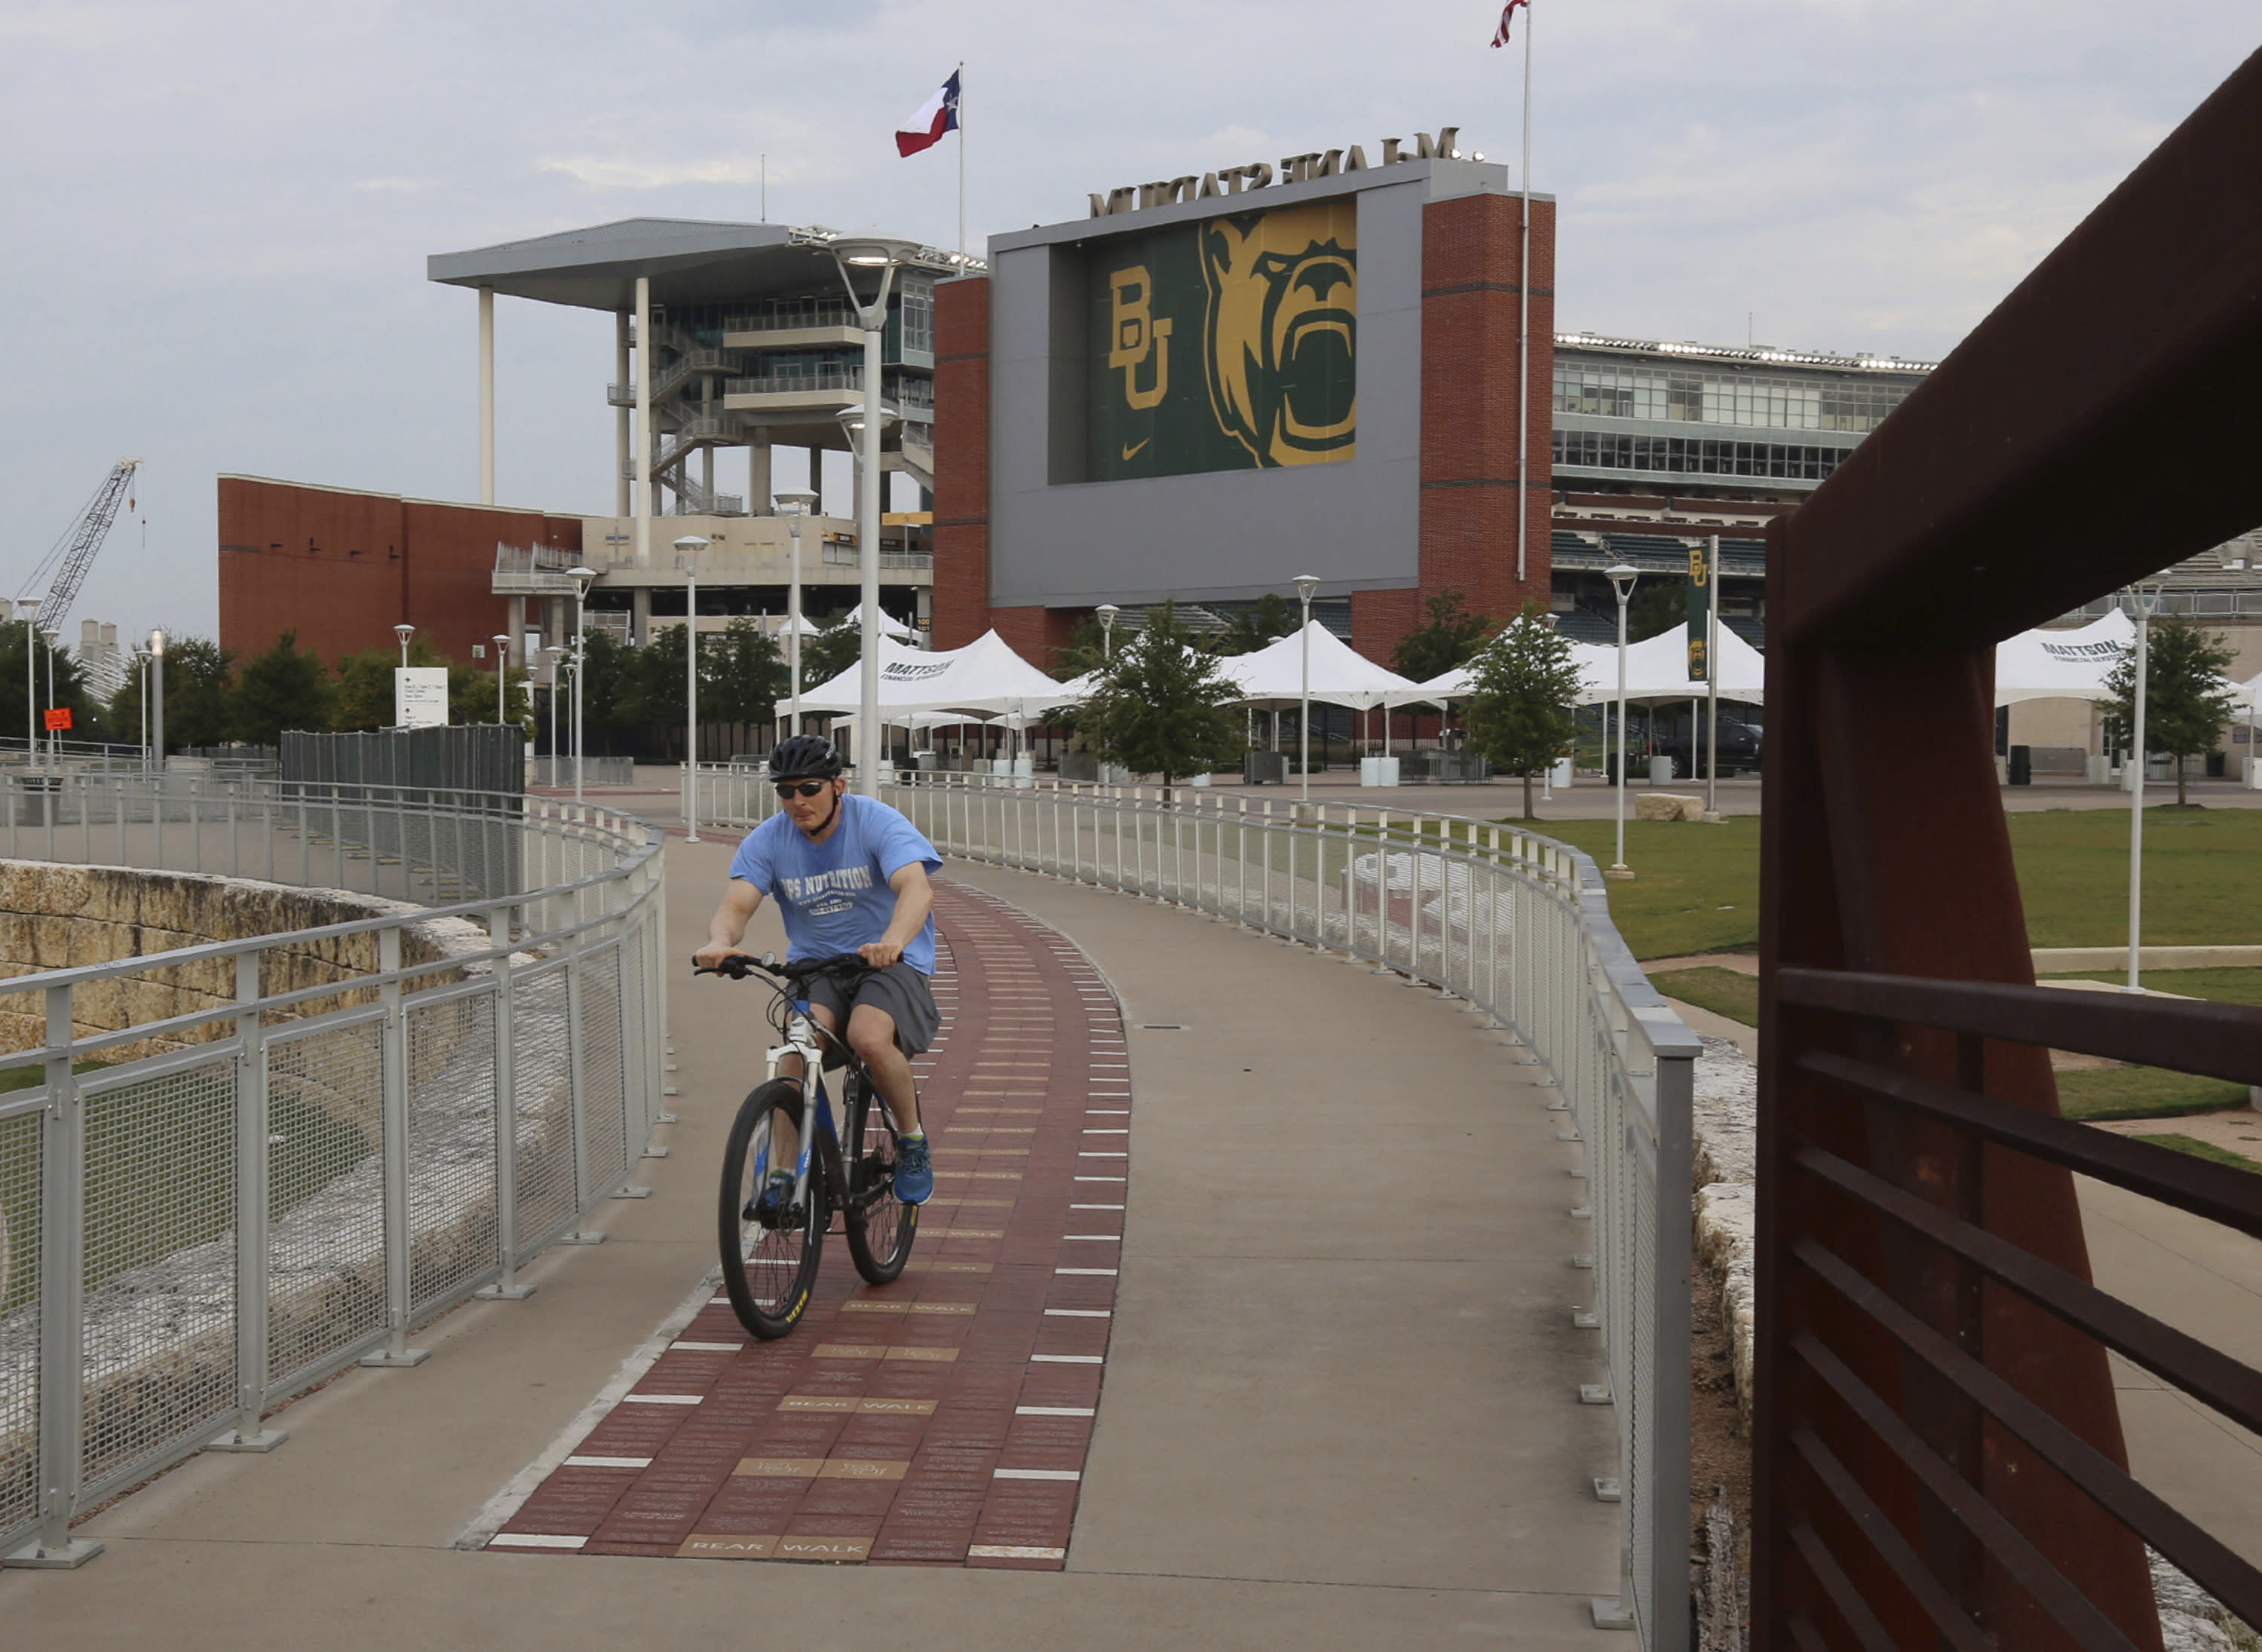 A bicyclist makes his way past Baylor University's McLane Stadium, Thursday, Sept. 17, 2020, in Waco, Texas. Baylor's season opener against Houston, scheduled less than a week ago, was one of two FBS NCAA college football games postponed Friday, Sept. 18, 2020, the day before before they were supposed play. (Rod Aydelotte/Waco Tribune-Herald via AP)